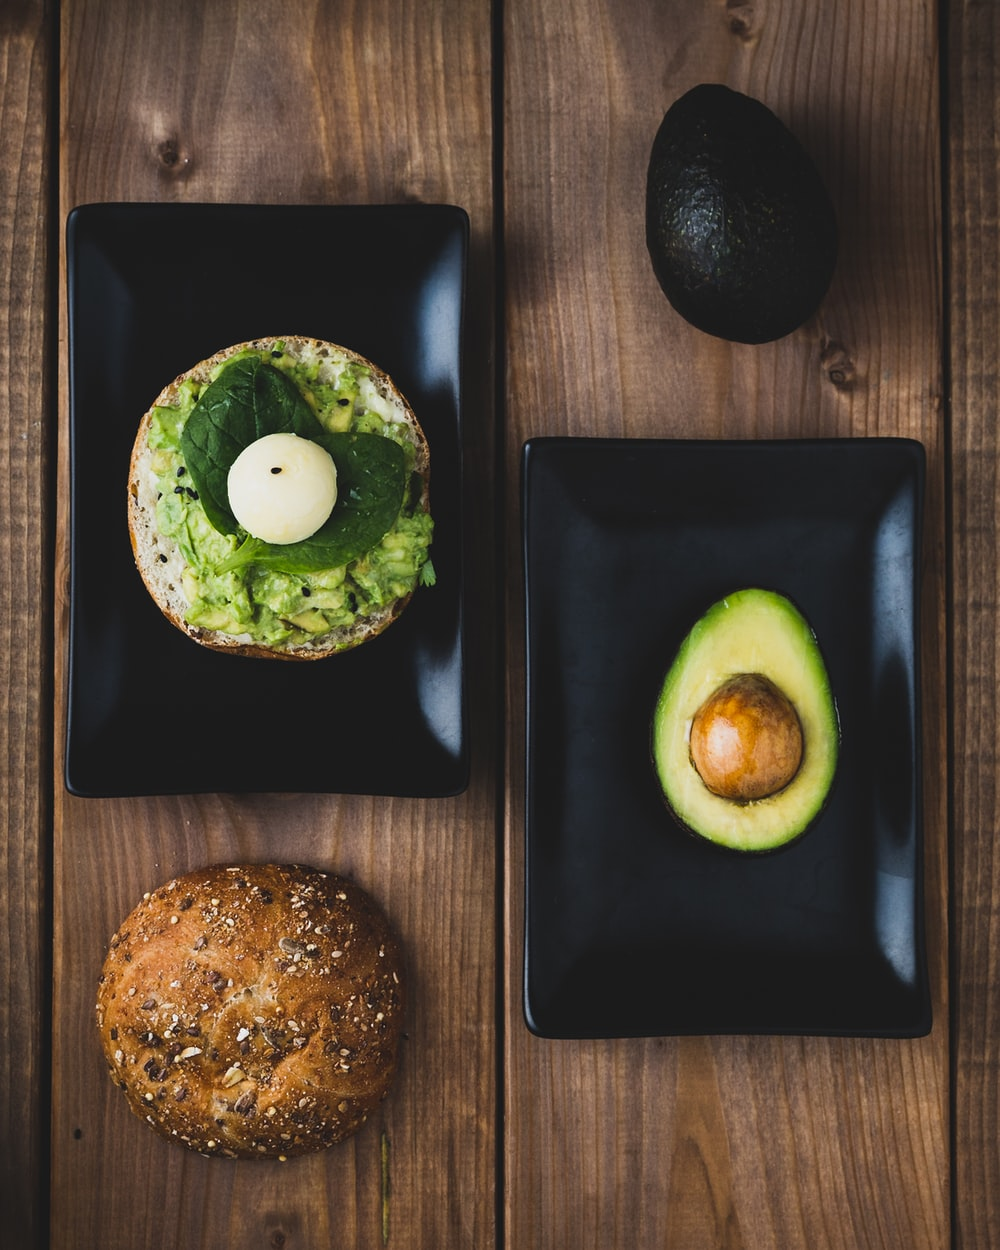 avocado on plate